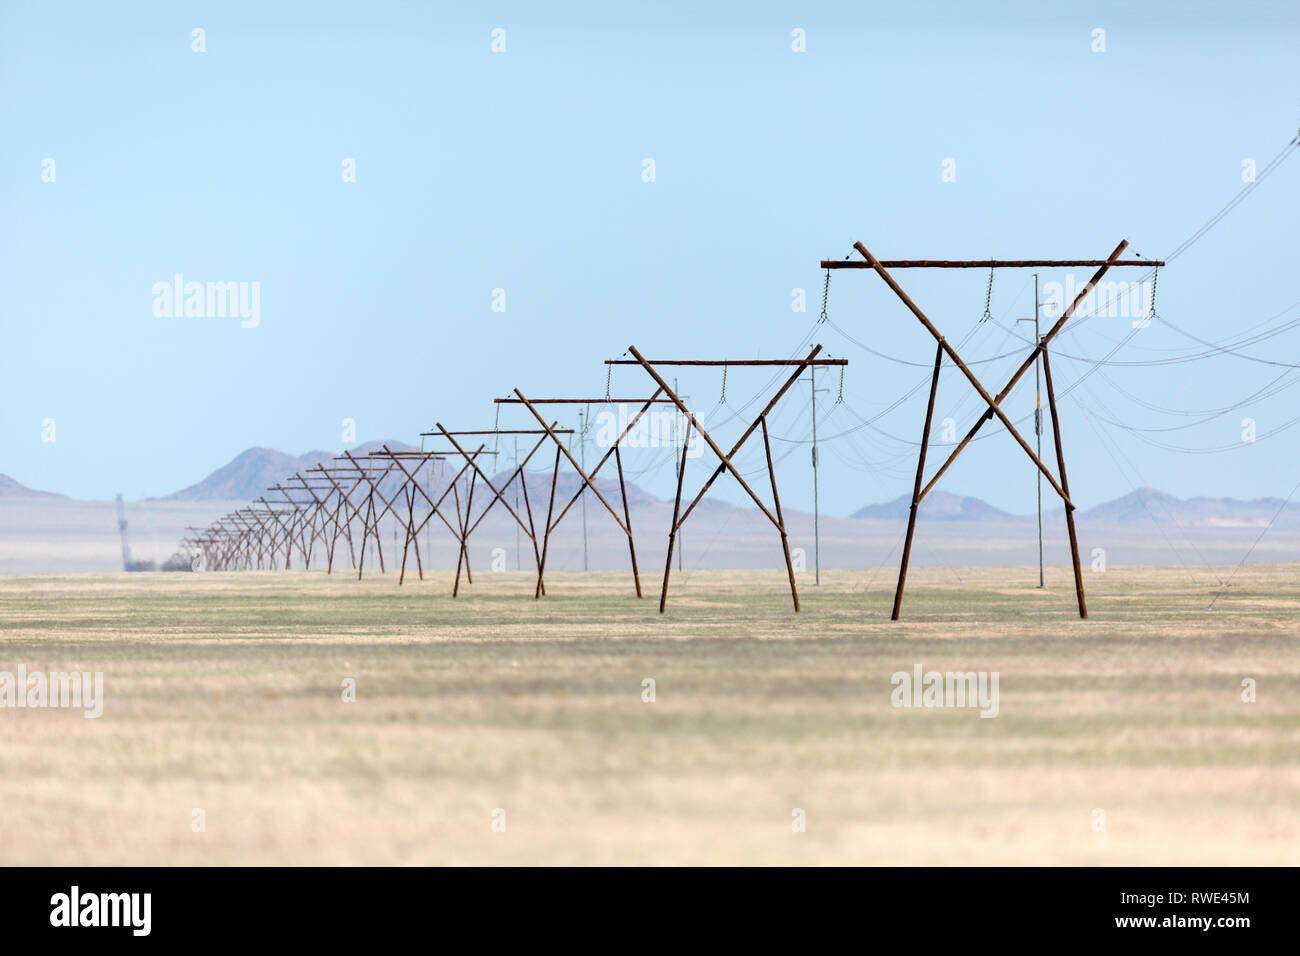 Endless power lines in the south of Namibia. - Stock Image